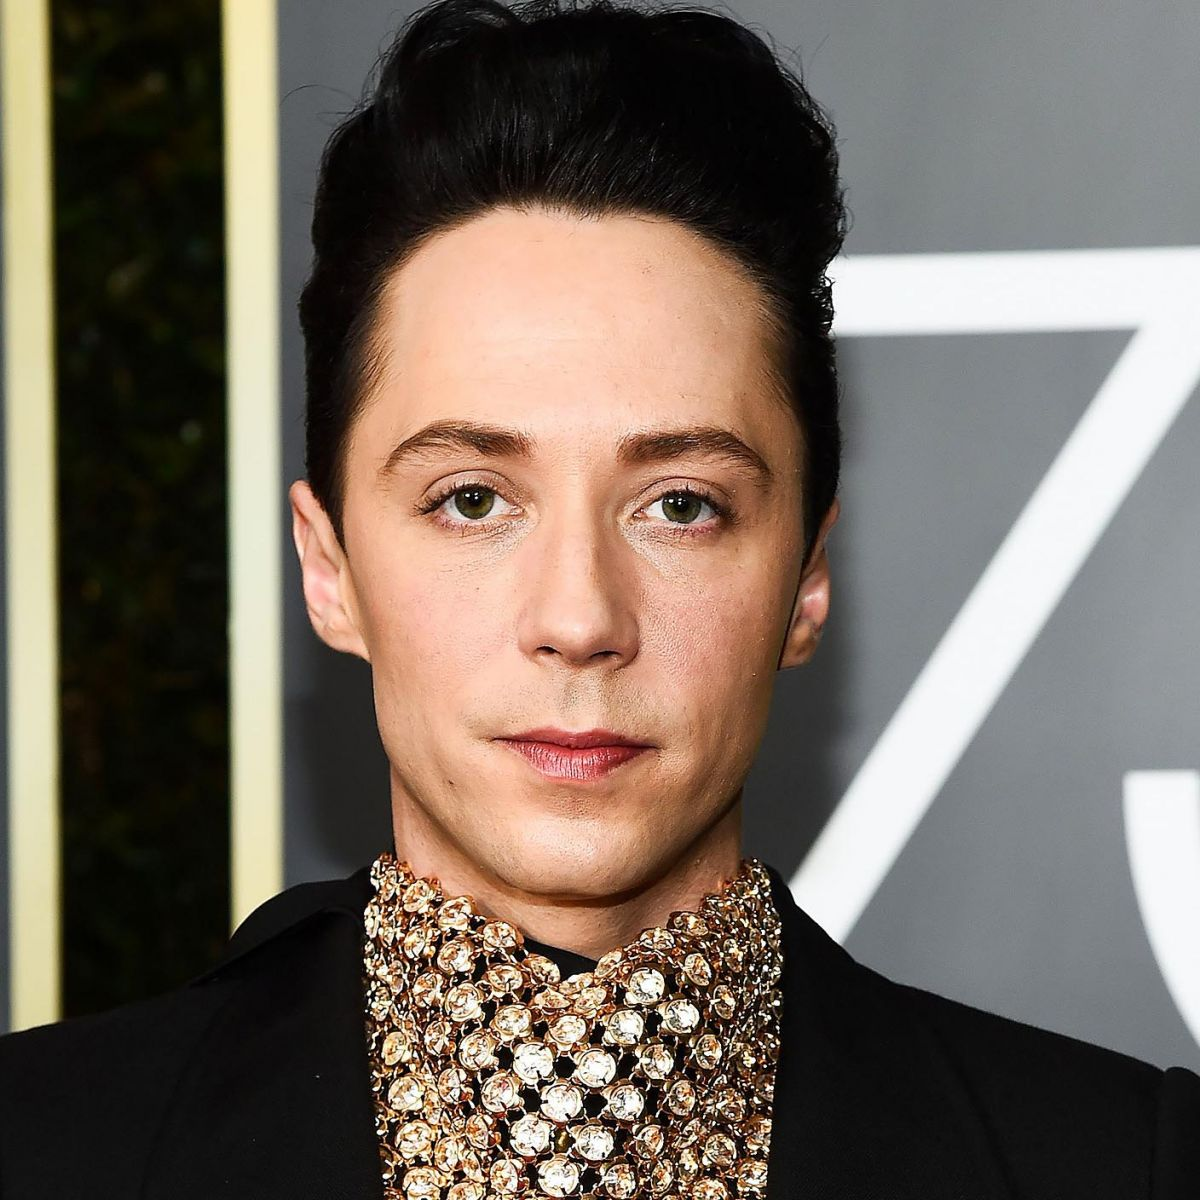 Johnny Weir Wiki: Gay, Husband, Divorce, 2018 Olympic Winter, Net Worth